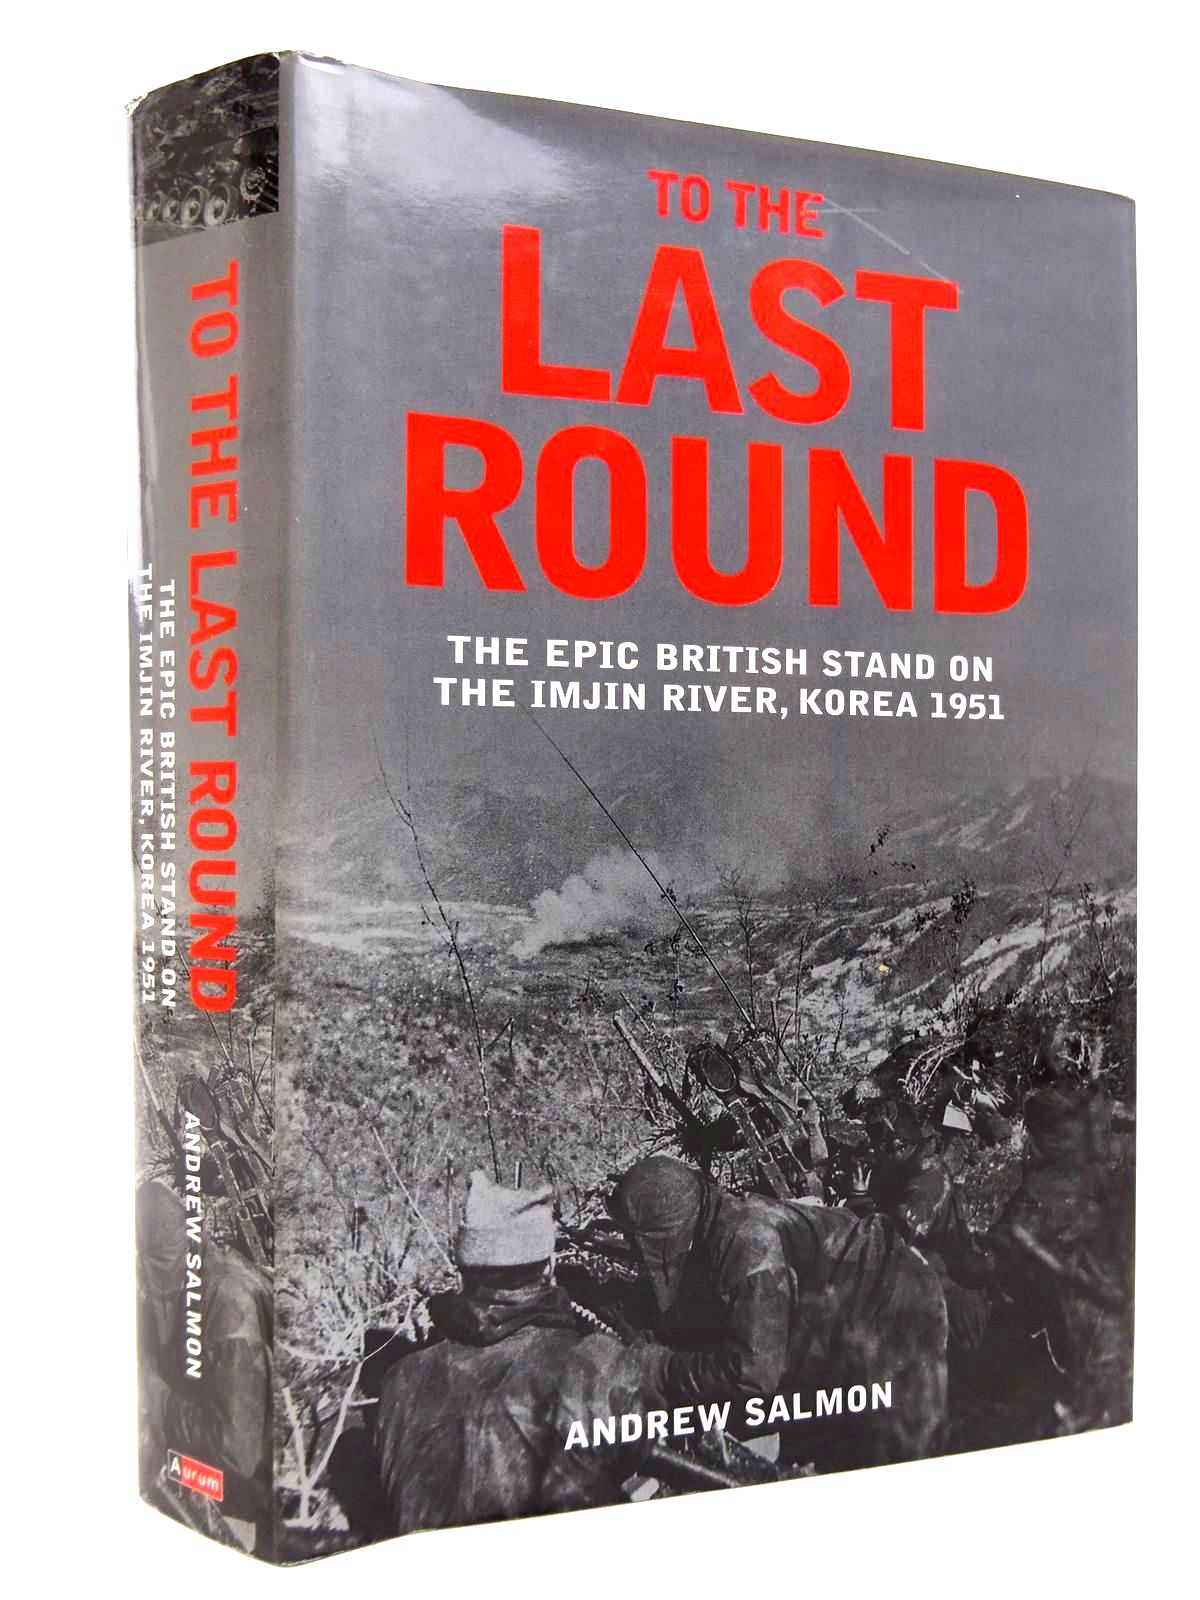 Photo of TO THE LAST ROUND: THE EPIC BRITISH STAND ON THE IMJIN RIVER, KOREA 1951 written by Salmon, Andrew published by Aurum Press (STOCK CODE: 1816805)  for sale by Stella & Rose's Books